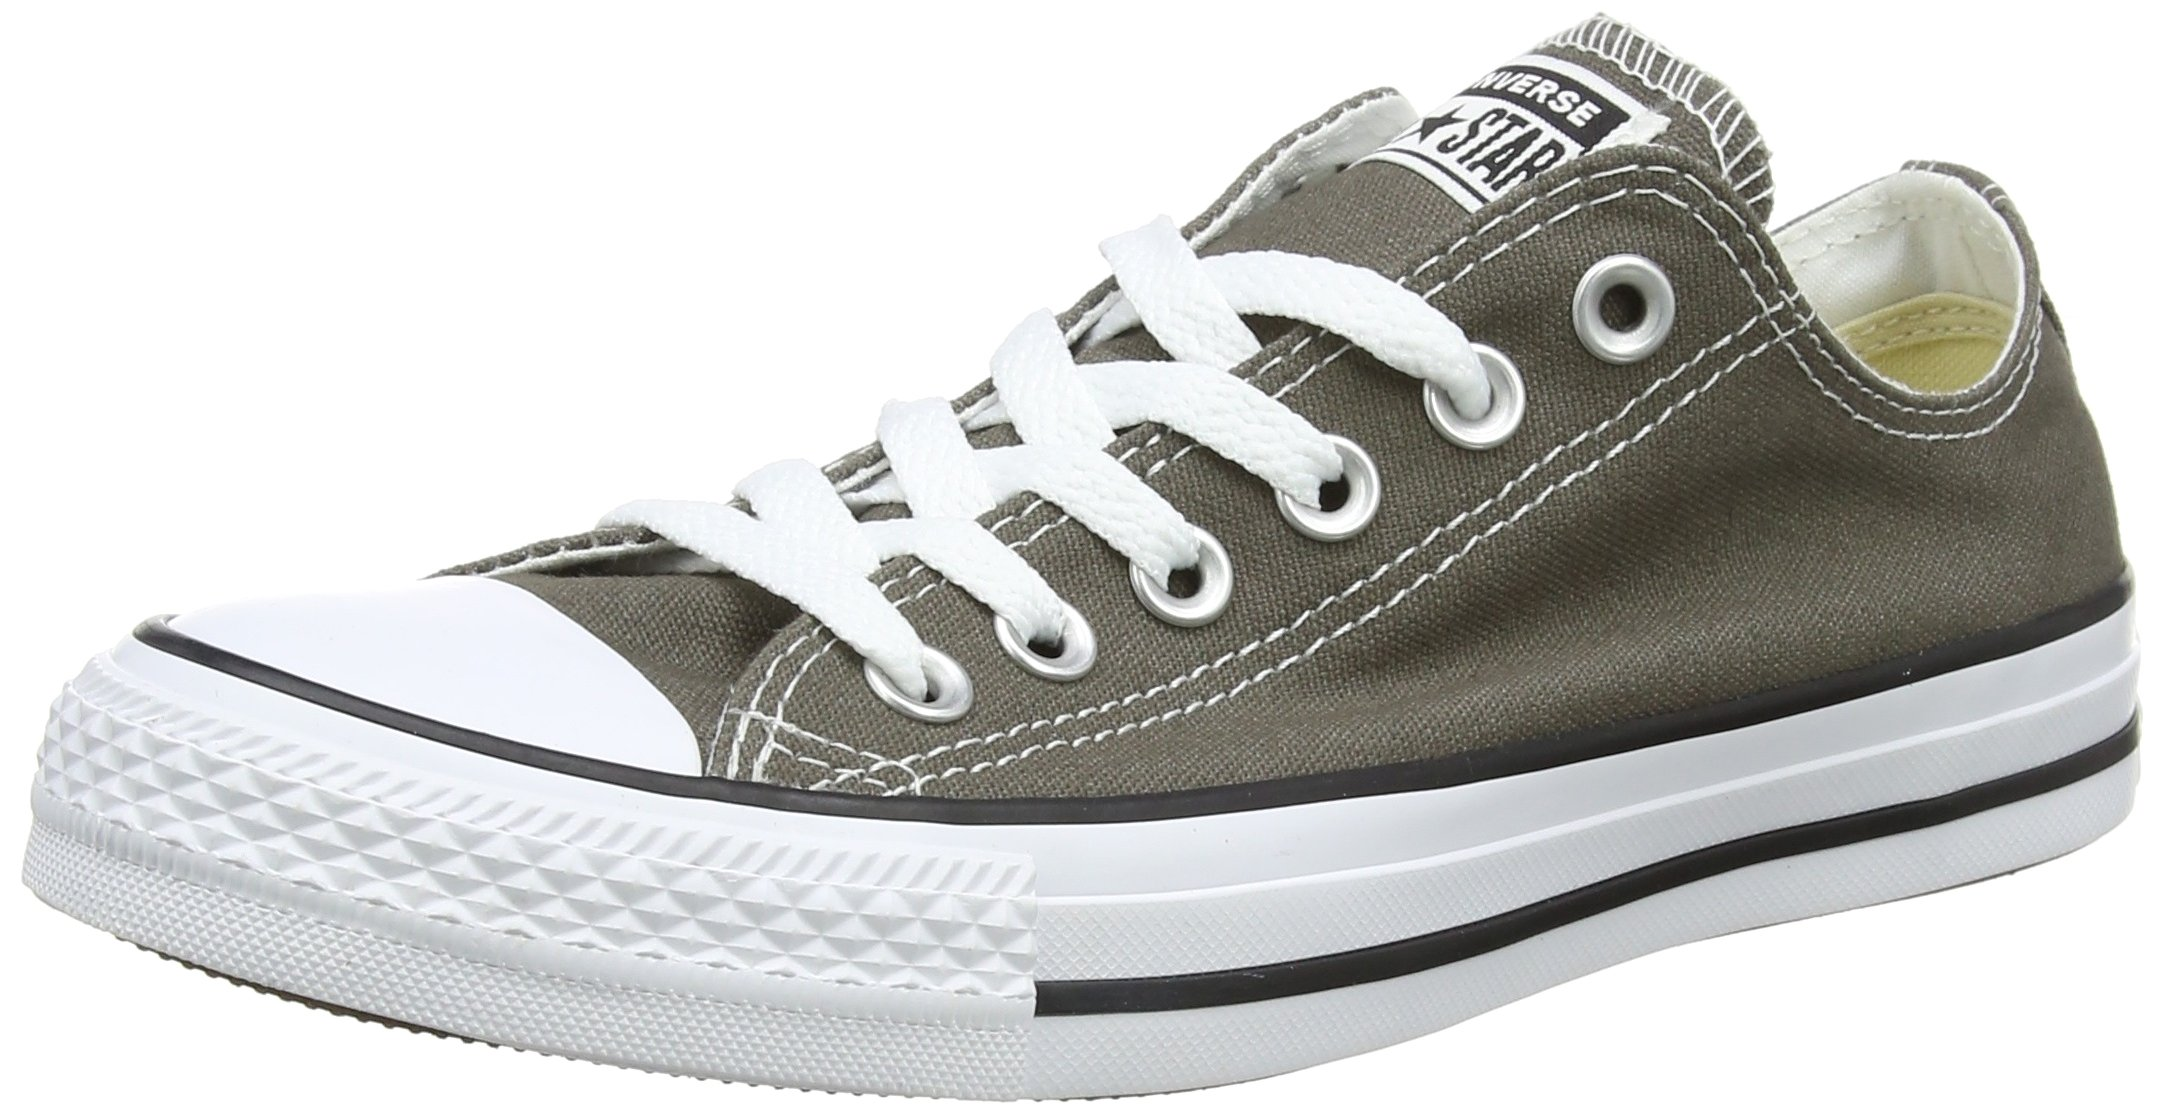 Converse Unisex Chuck Taylor All Star Low Top Charcoal Sneakers - 13 D(M) US by Converse